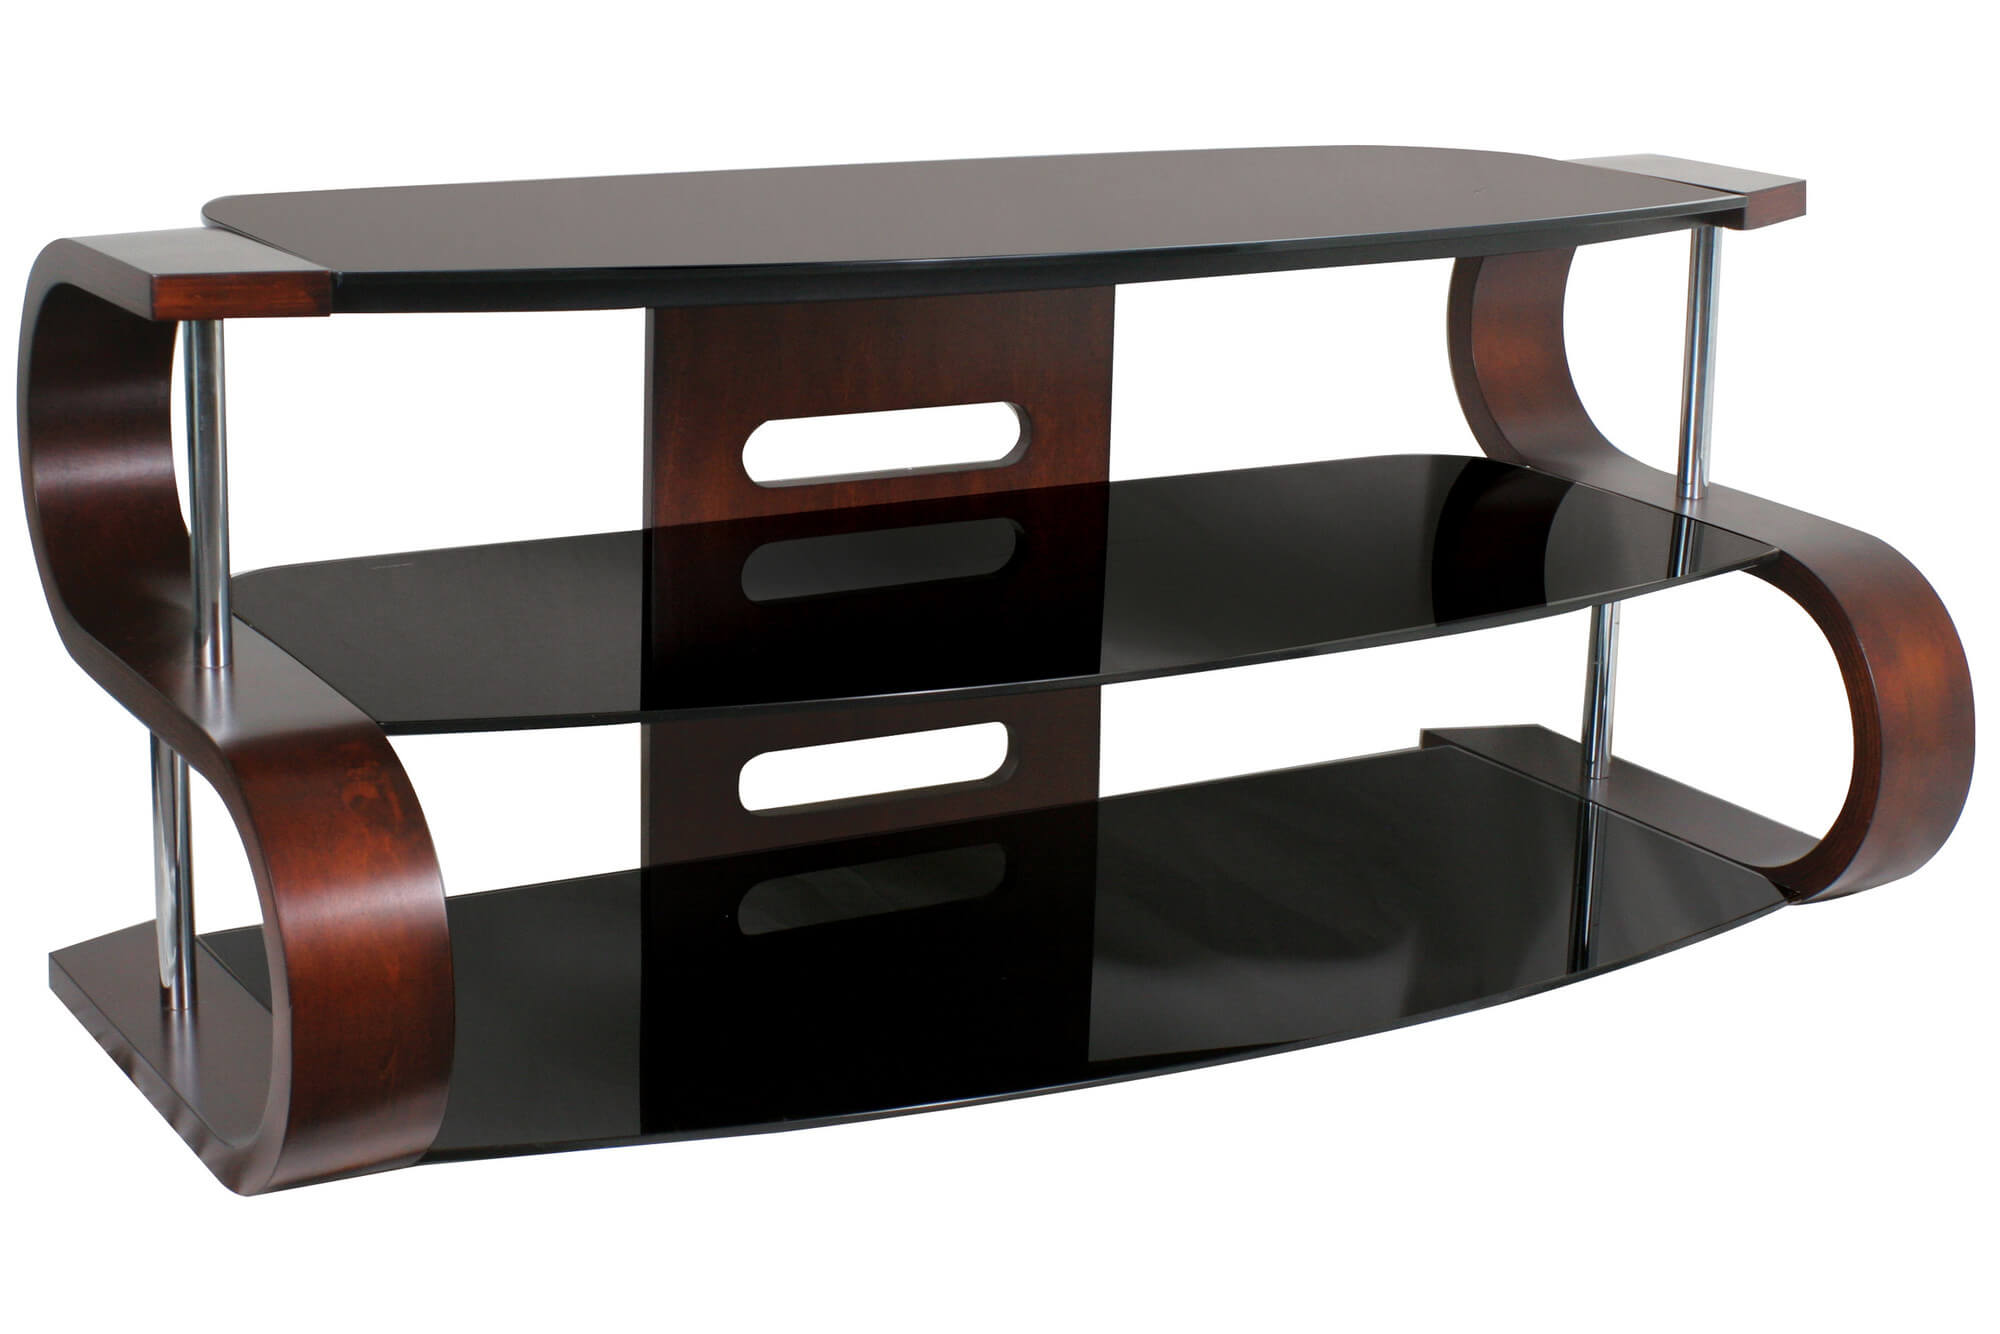 Etonnant Modern TV Stand Design With Shelves.